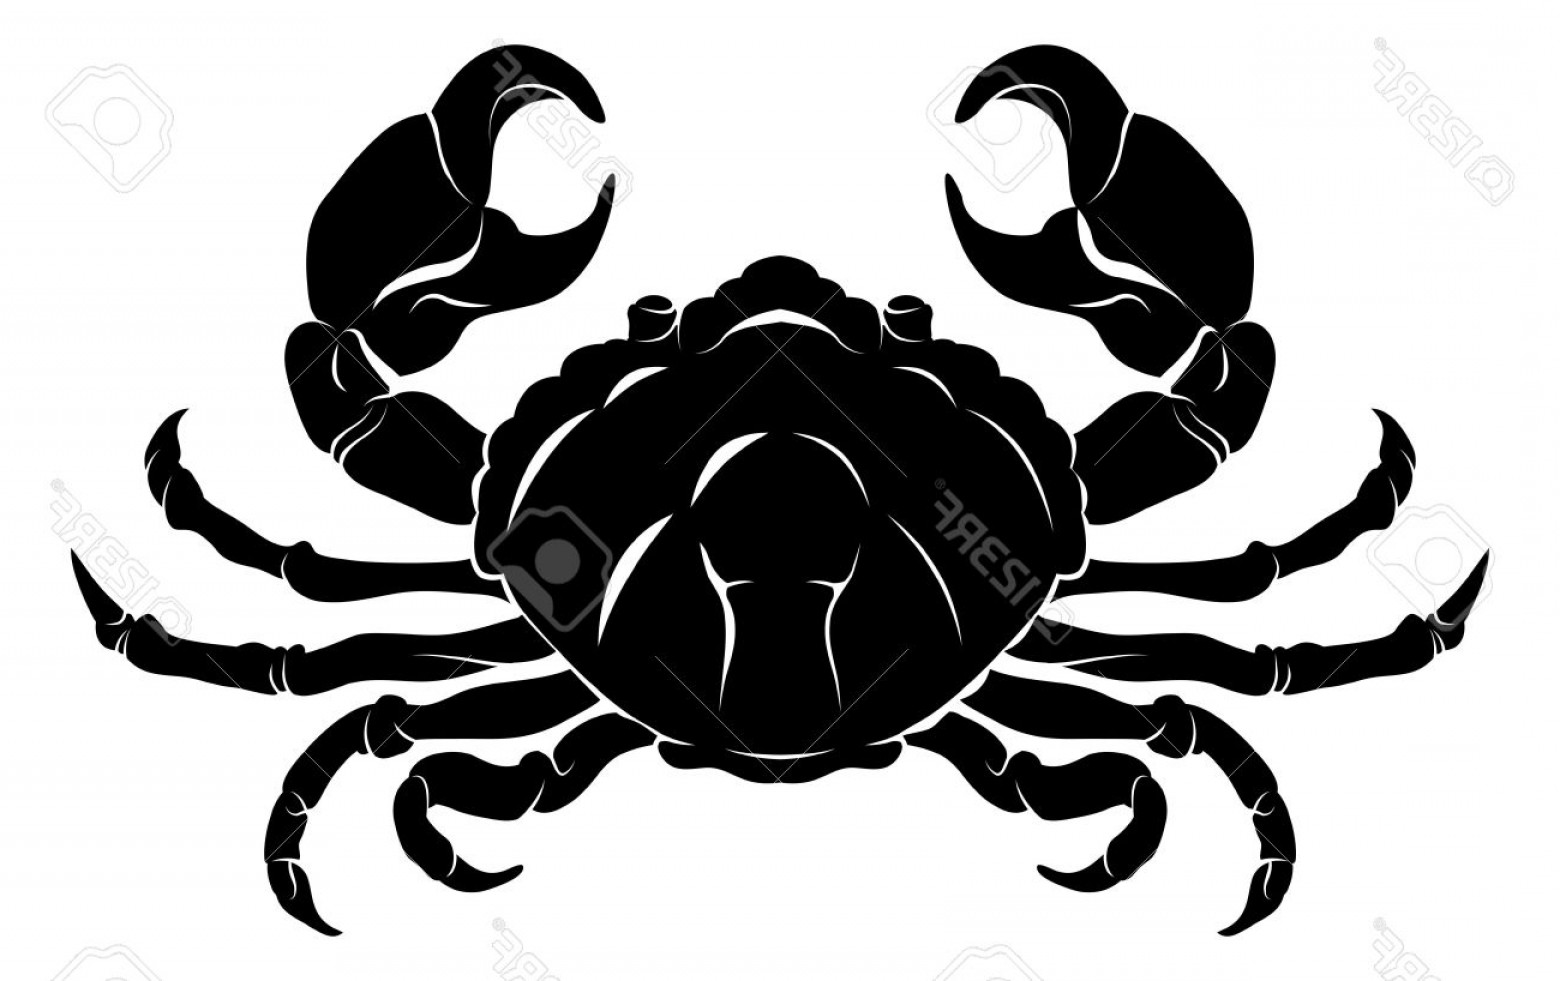 Crab Vector Black: Photoan Illustration Of A Stylised Black Crab Perhaps A Crab Tattoo